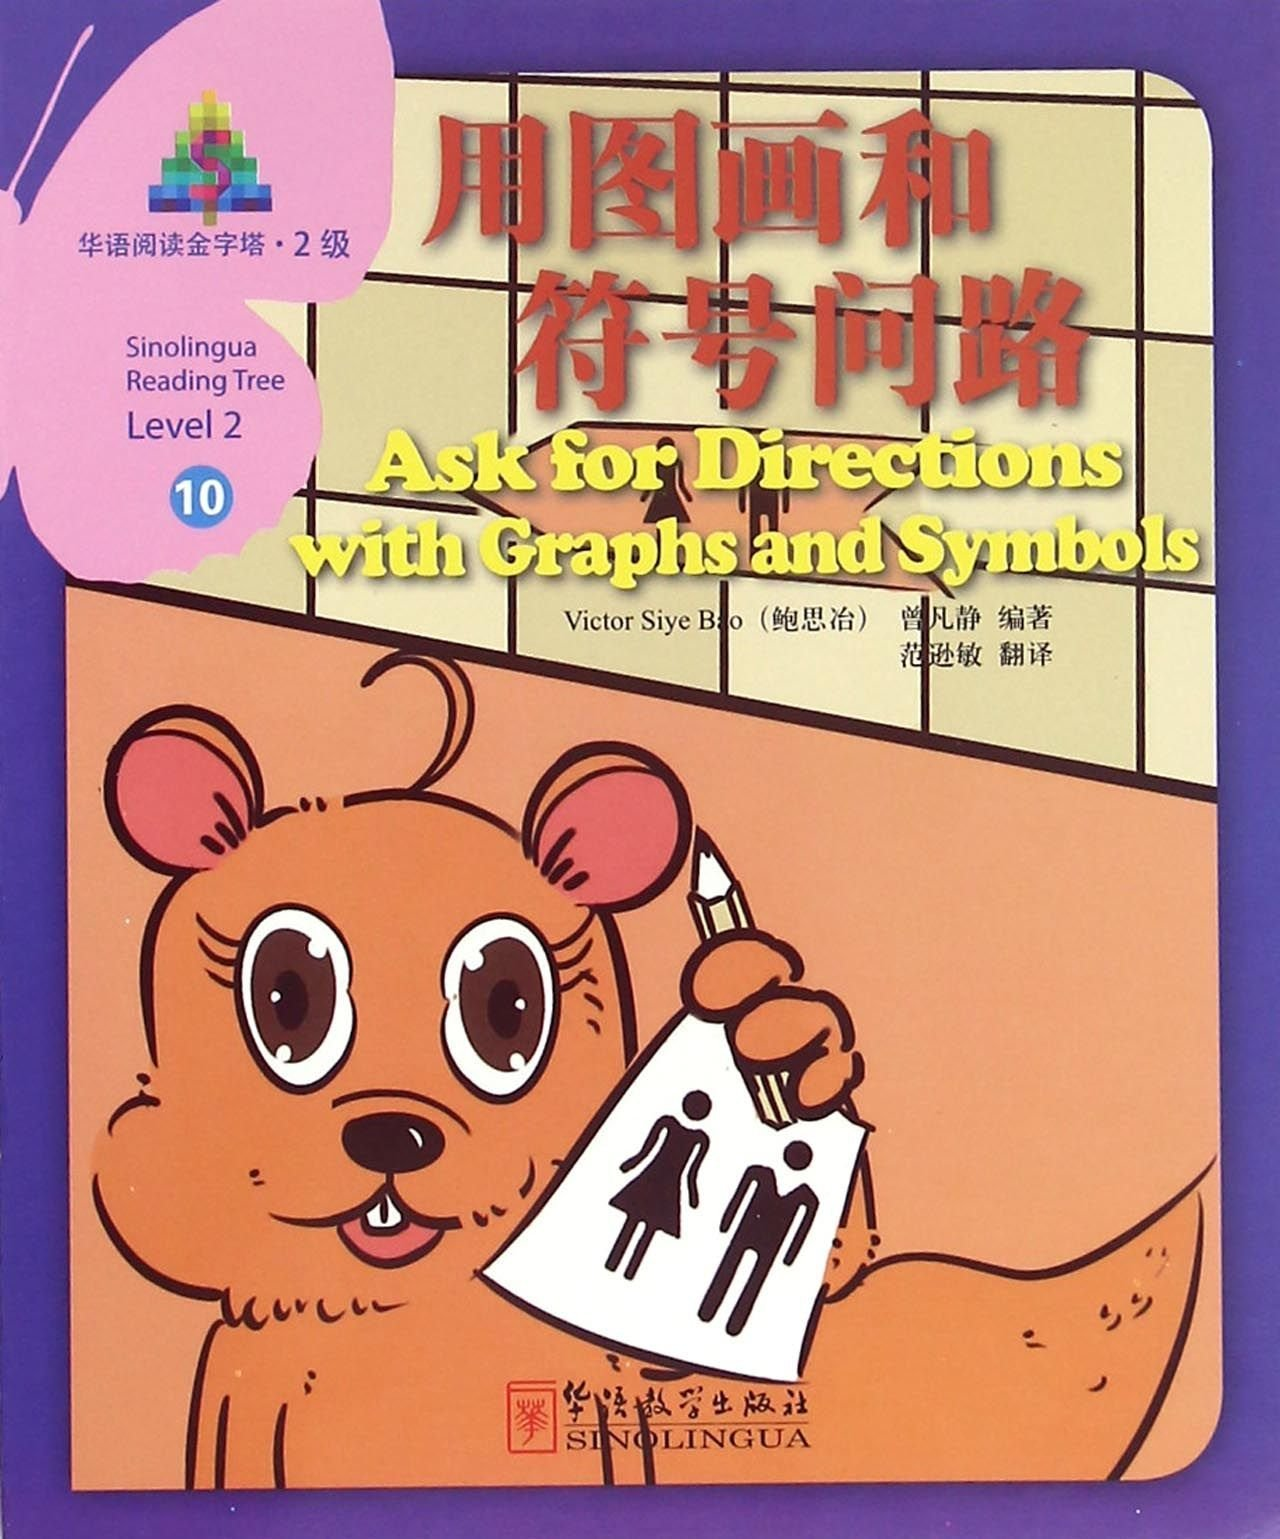 Download Ask for Directions with Graphs and Symbols -Sinolingua Reading Tree Level 2 (English and Chinese Edition) ebook